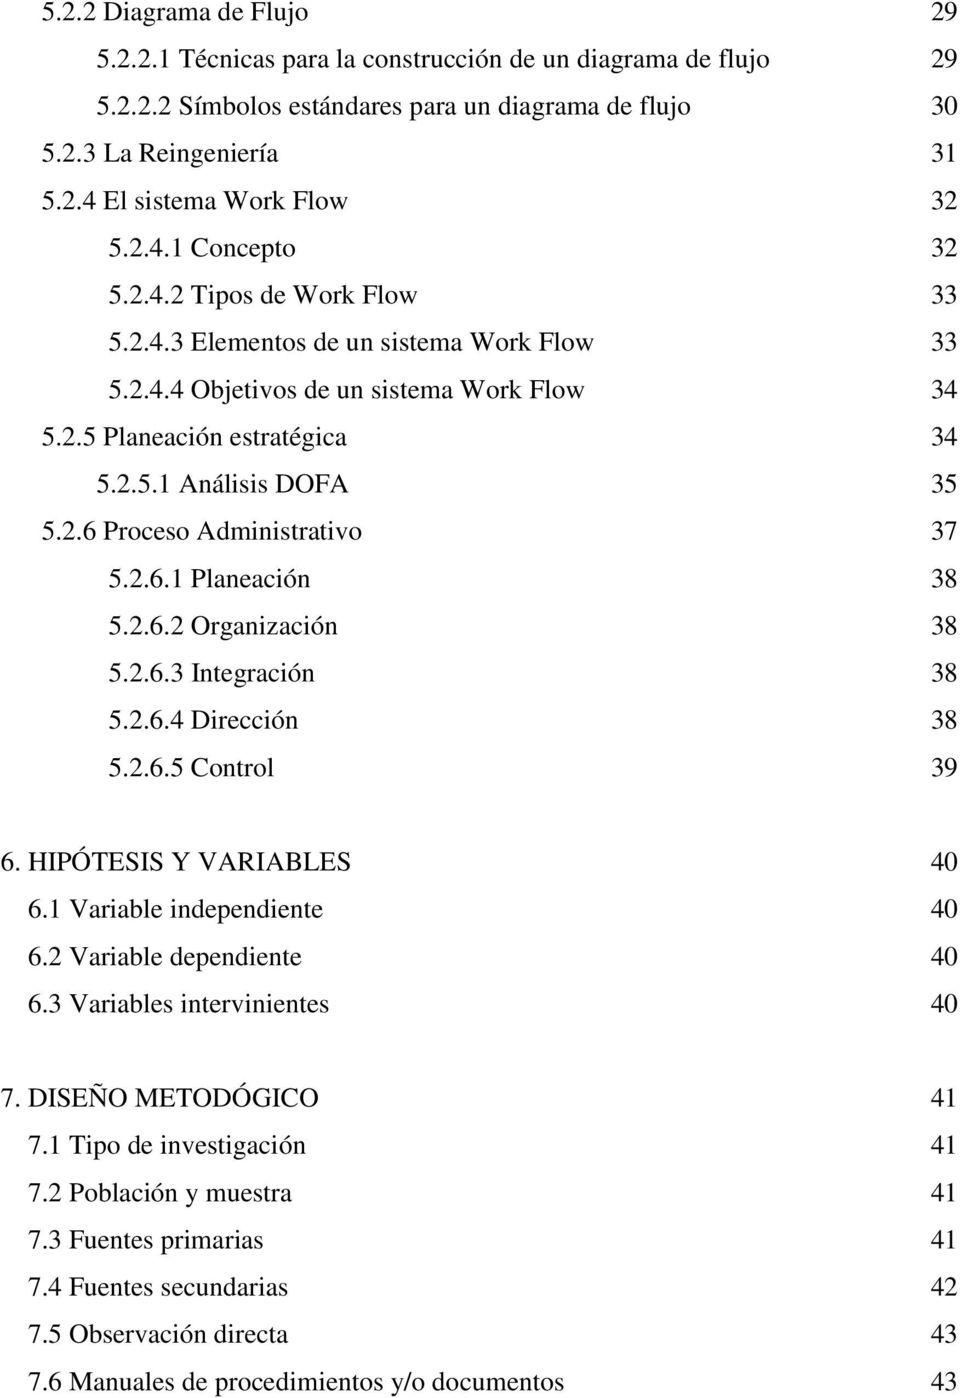 2.6.1 Planeación 38 5.2.6.2 Organización 38 5.2.6.3 Integración 38 5.2.6.4 Dirección 38 5.2.6.5 Control 39 6. HIPÓTESIS Y VARIABLES 40 6.1 Variable independiente 40 6.2 Variable dependiente 40 6.